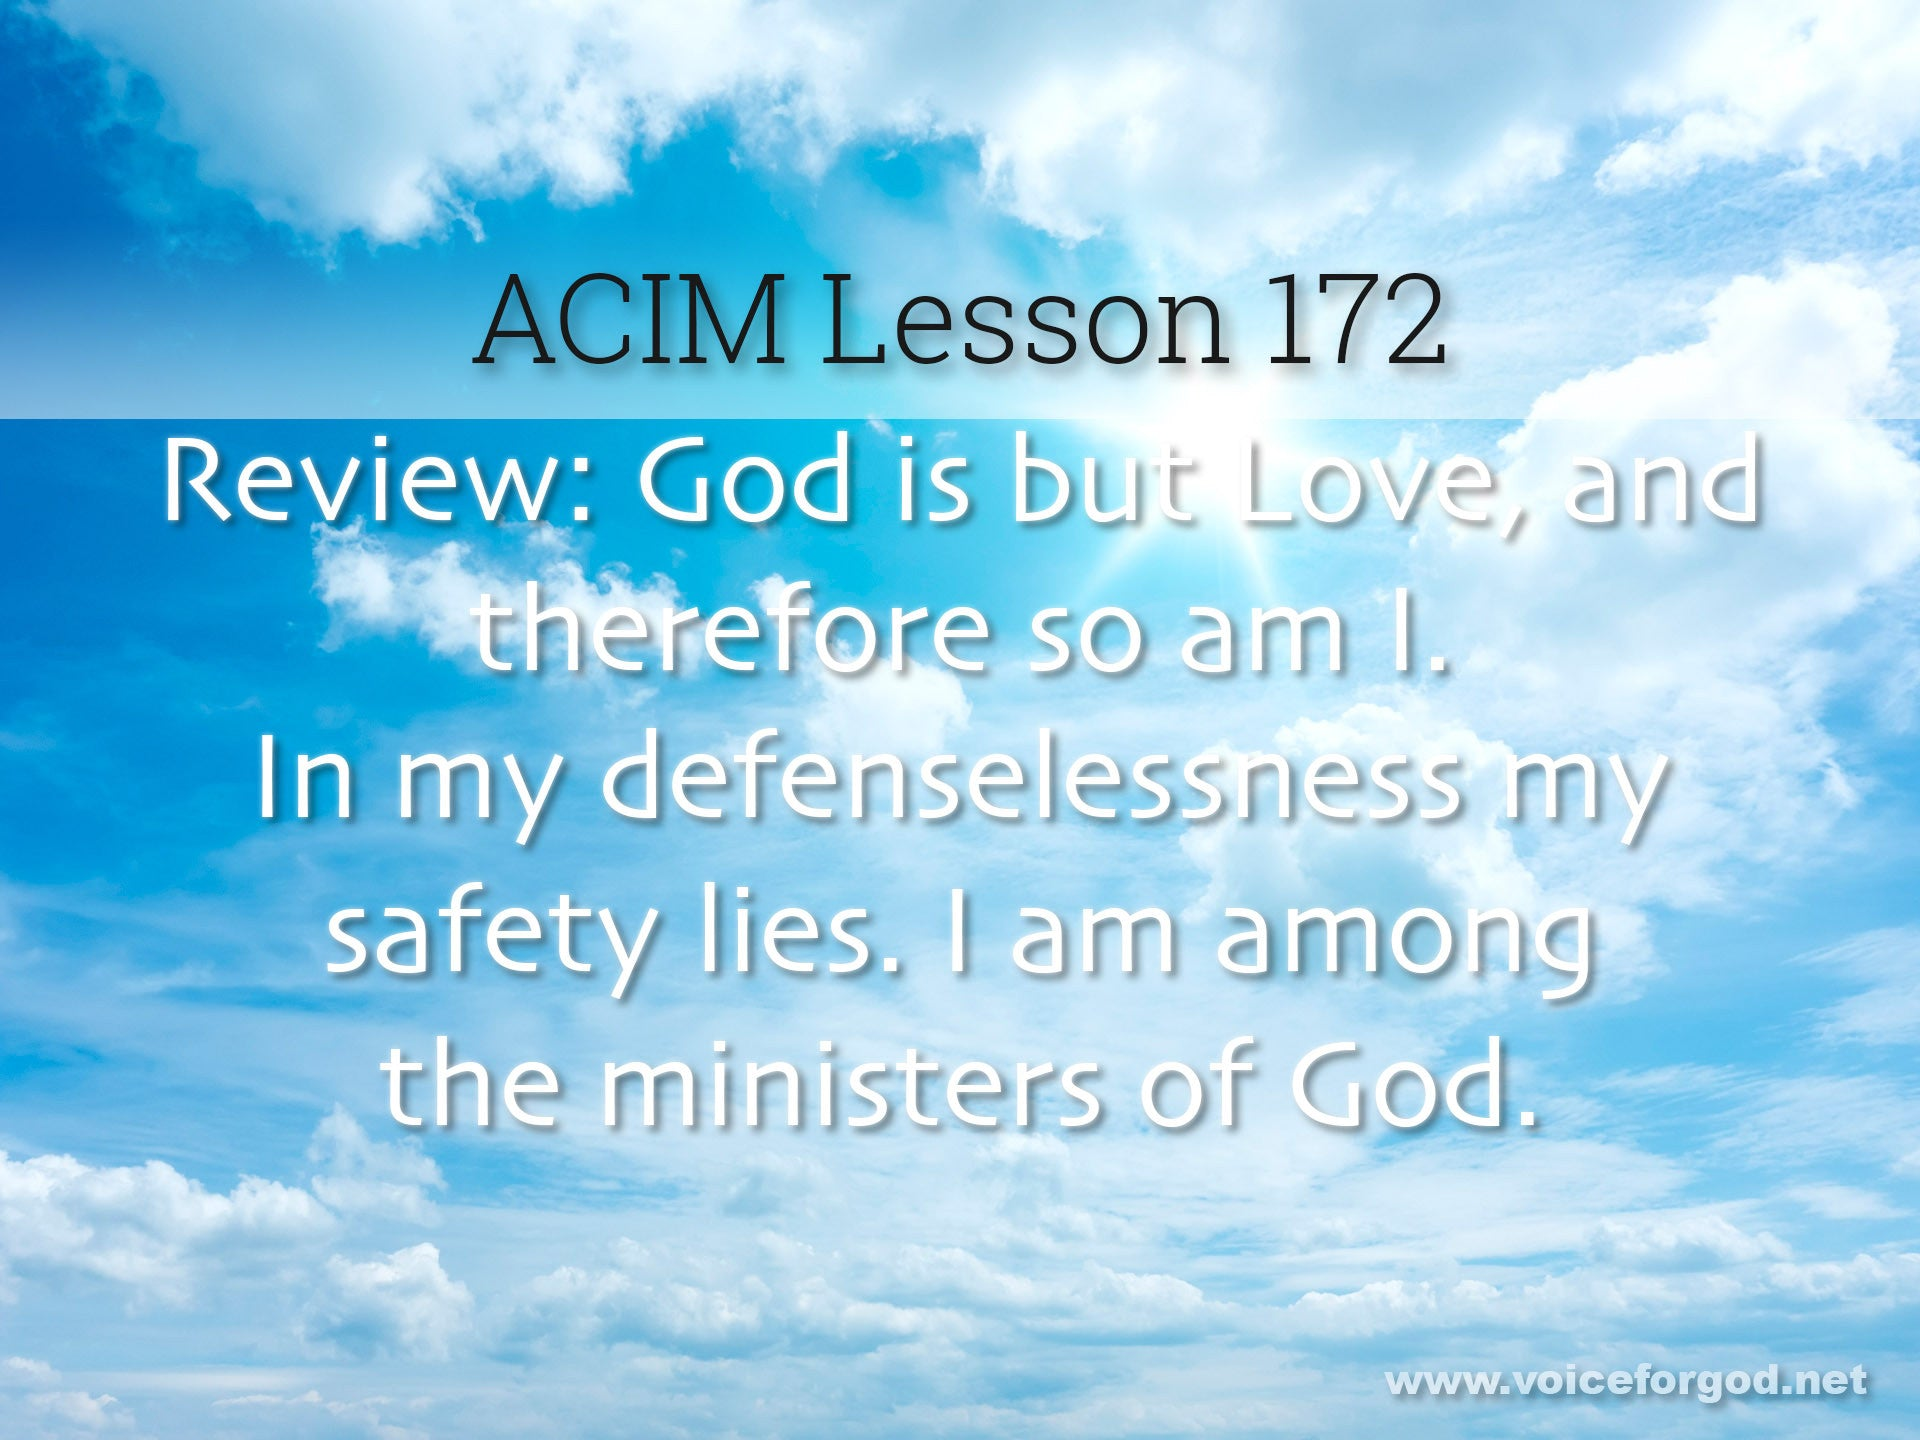 ACIM Lesson 172 - A Course in Miracles Workbook Lesson 172